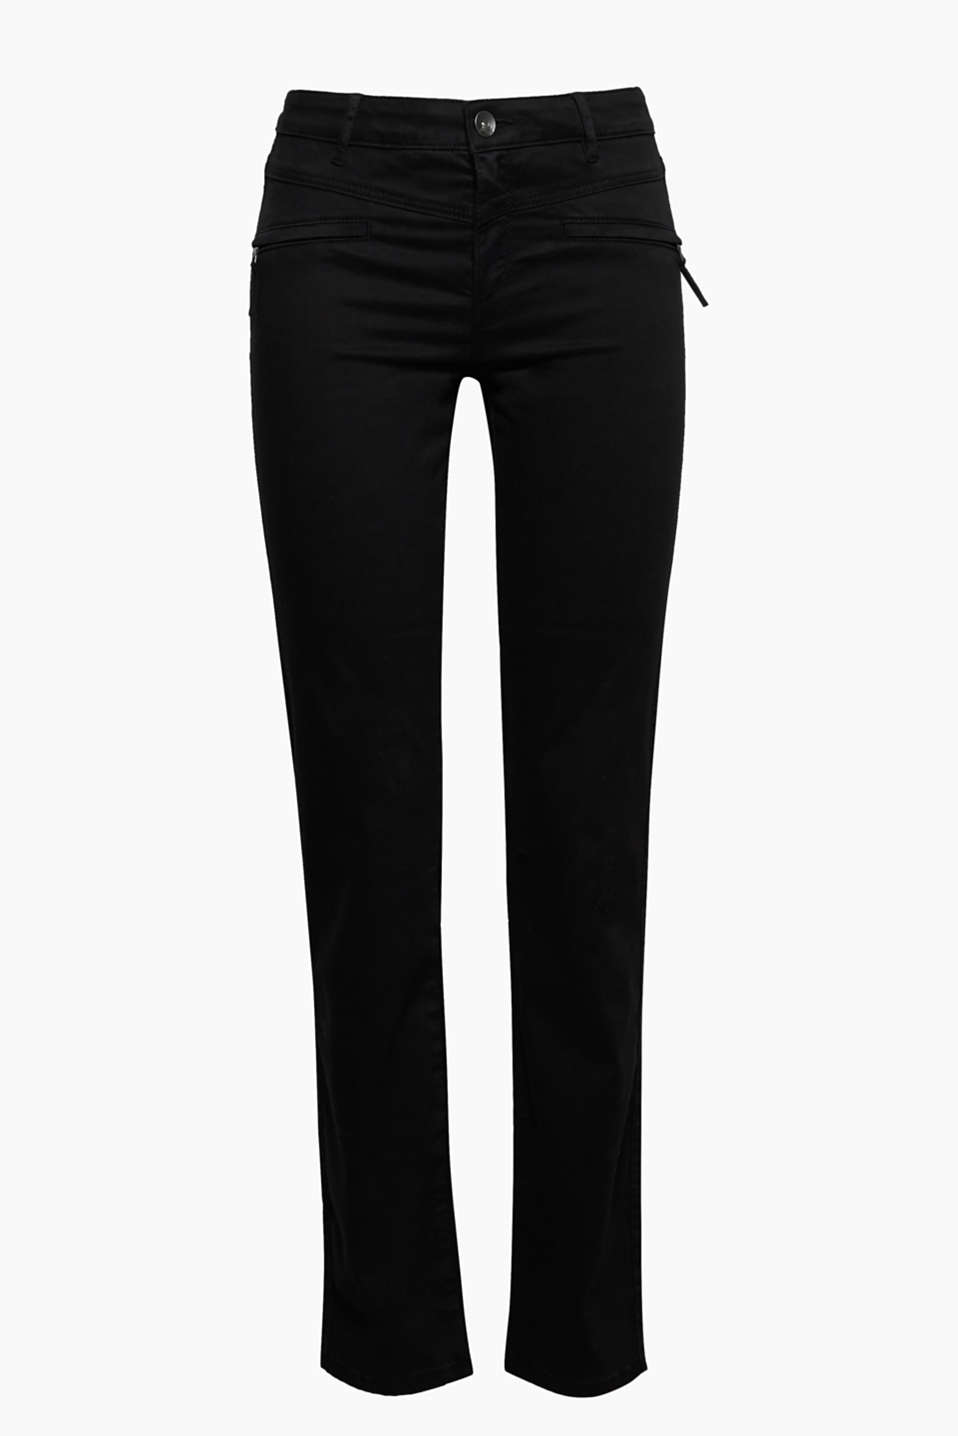 The outer surface, similar to peach skin, and the trendy zip give these cotton stretch trousers their new look!